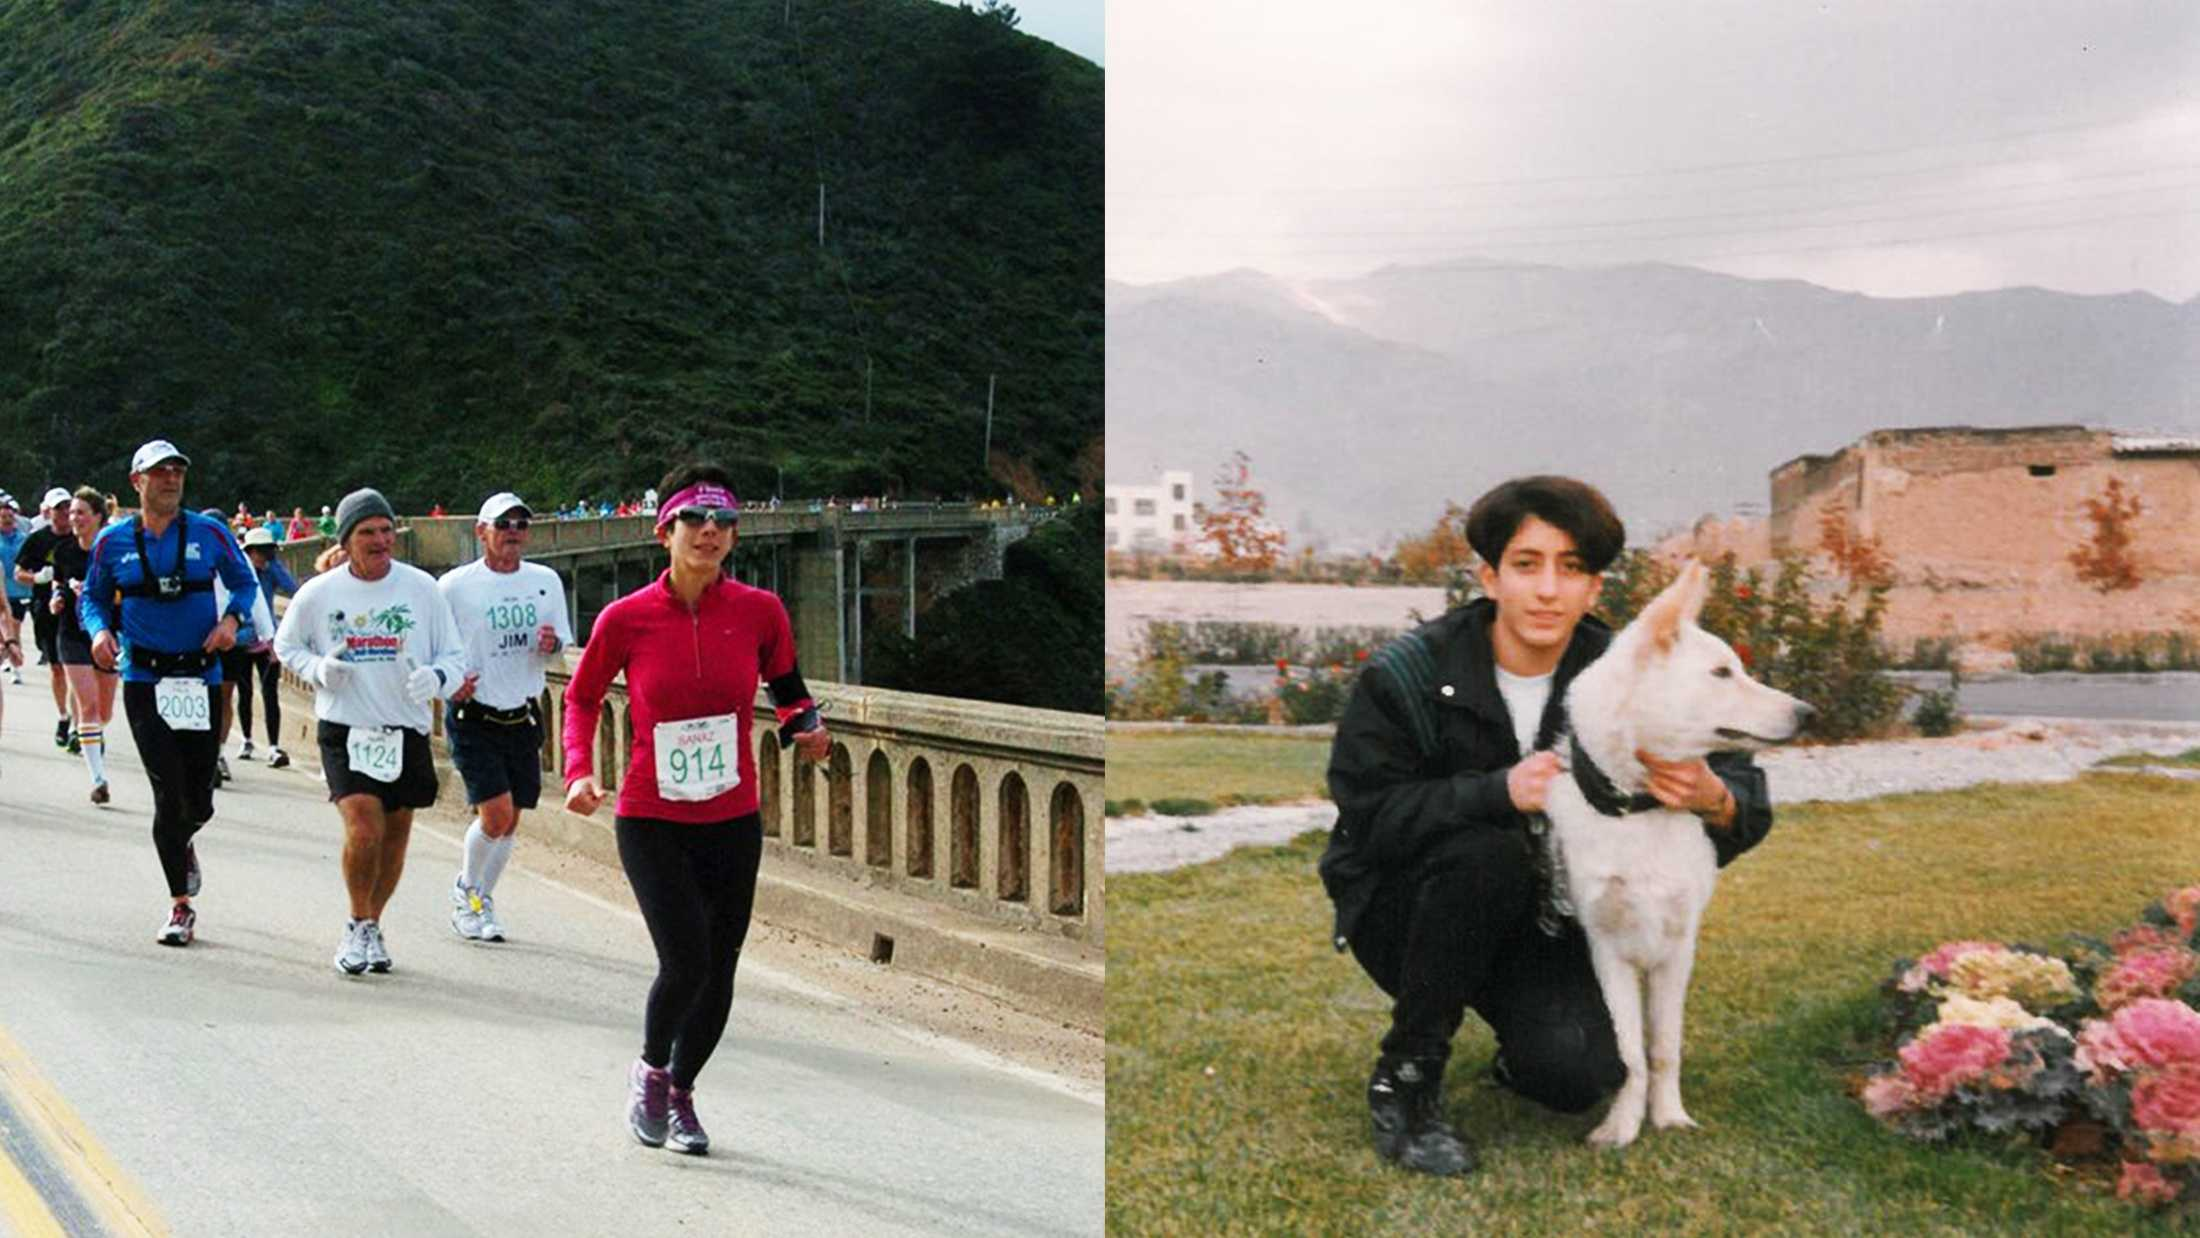 Sanaz Tofighrad is seen on the right in Iran, and on the left running the Big Sur International Marathon.